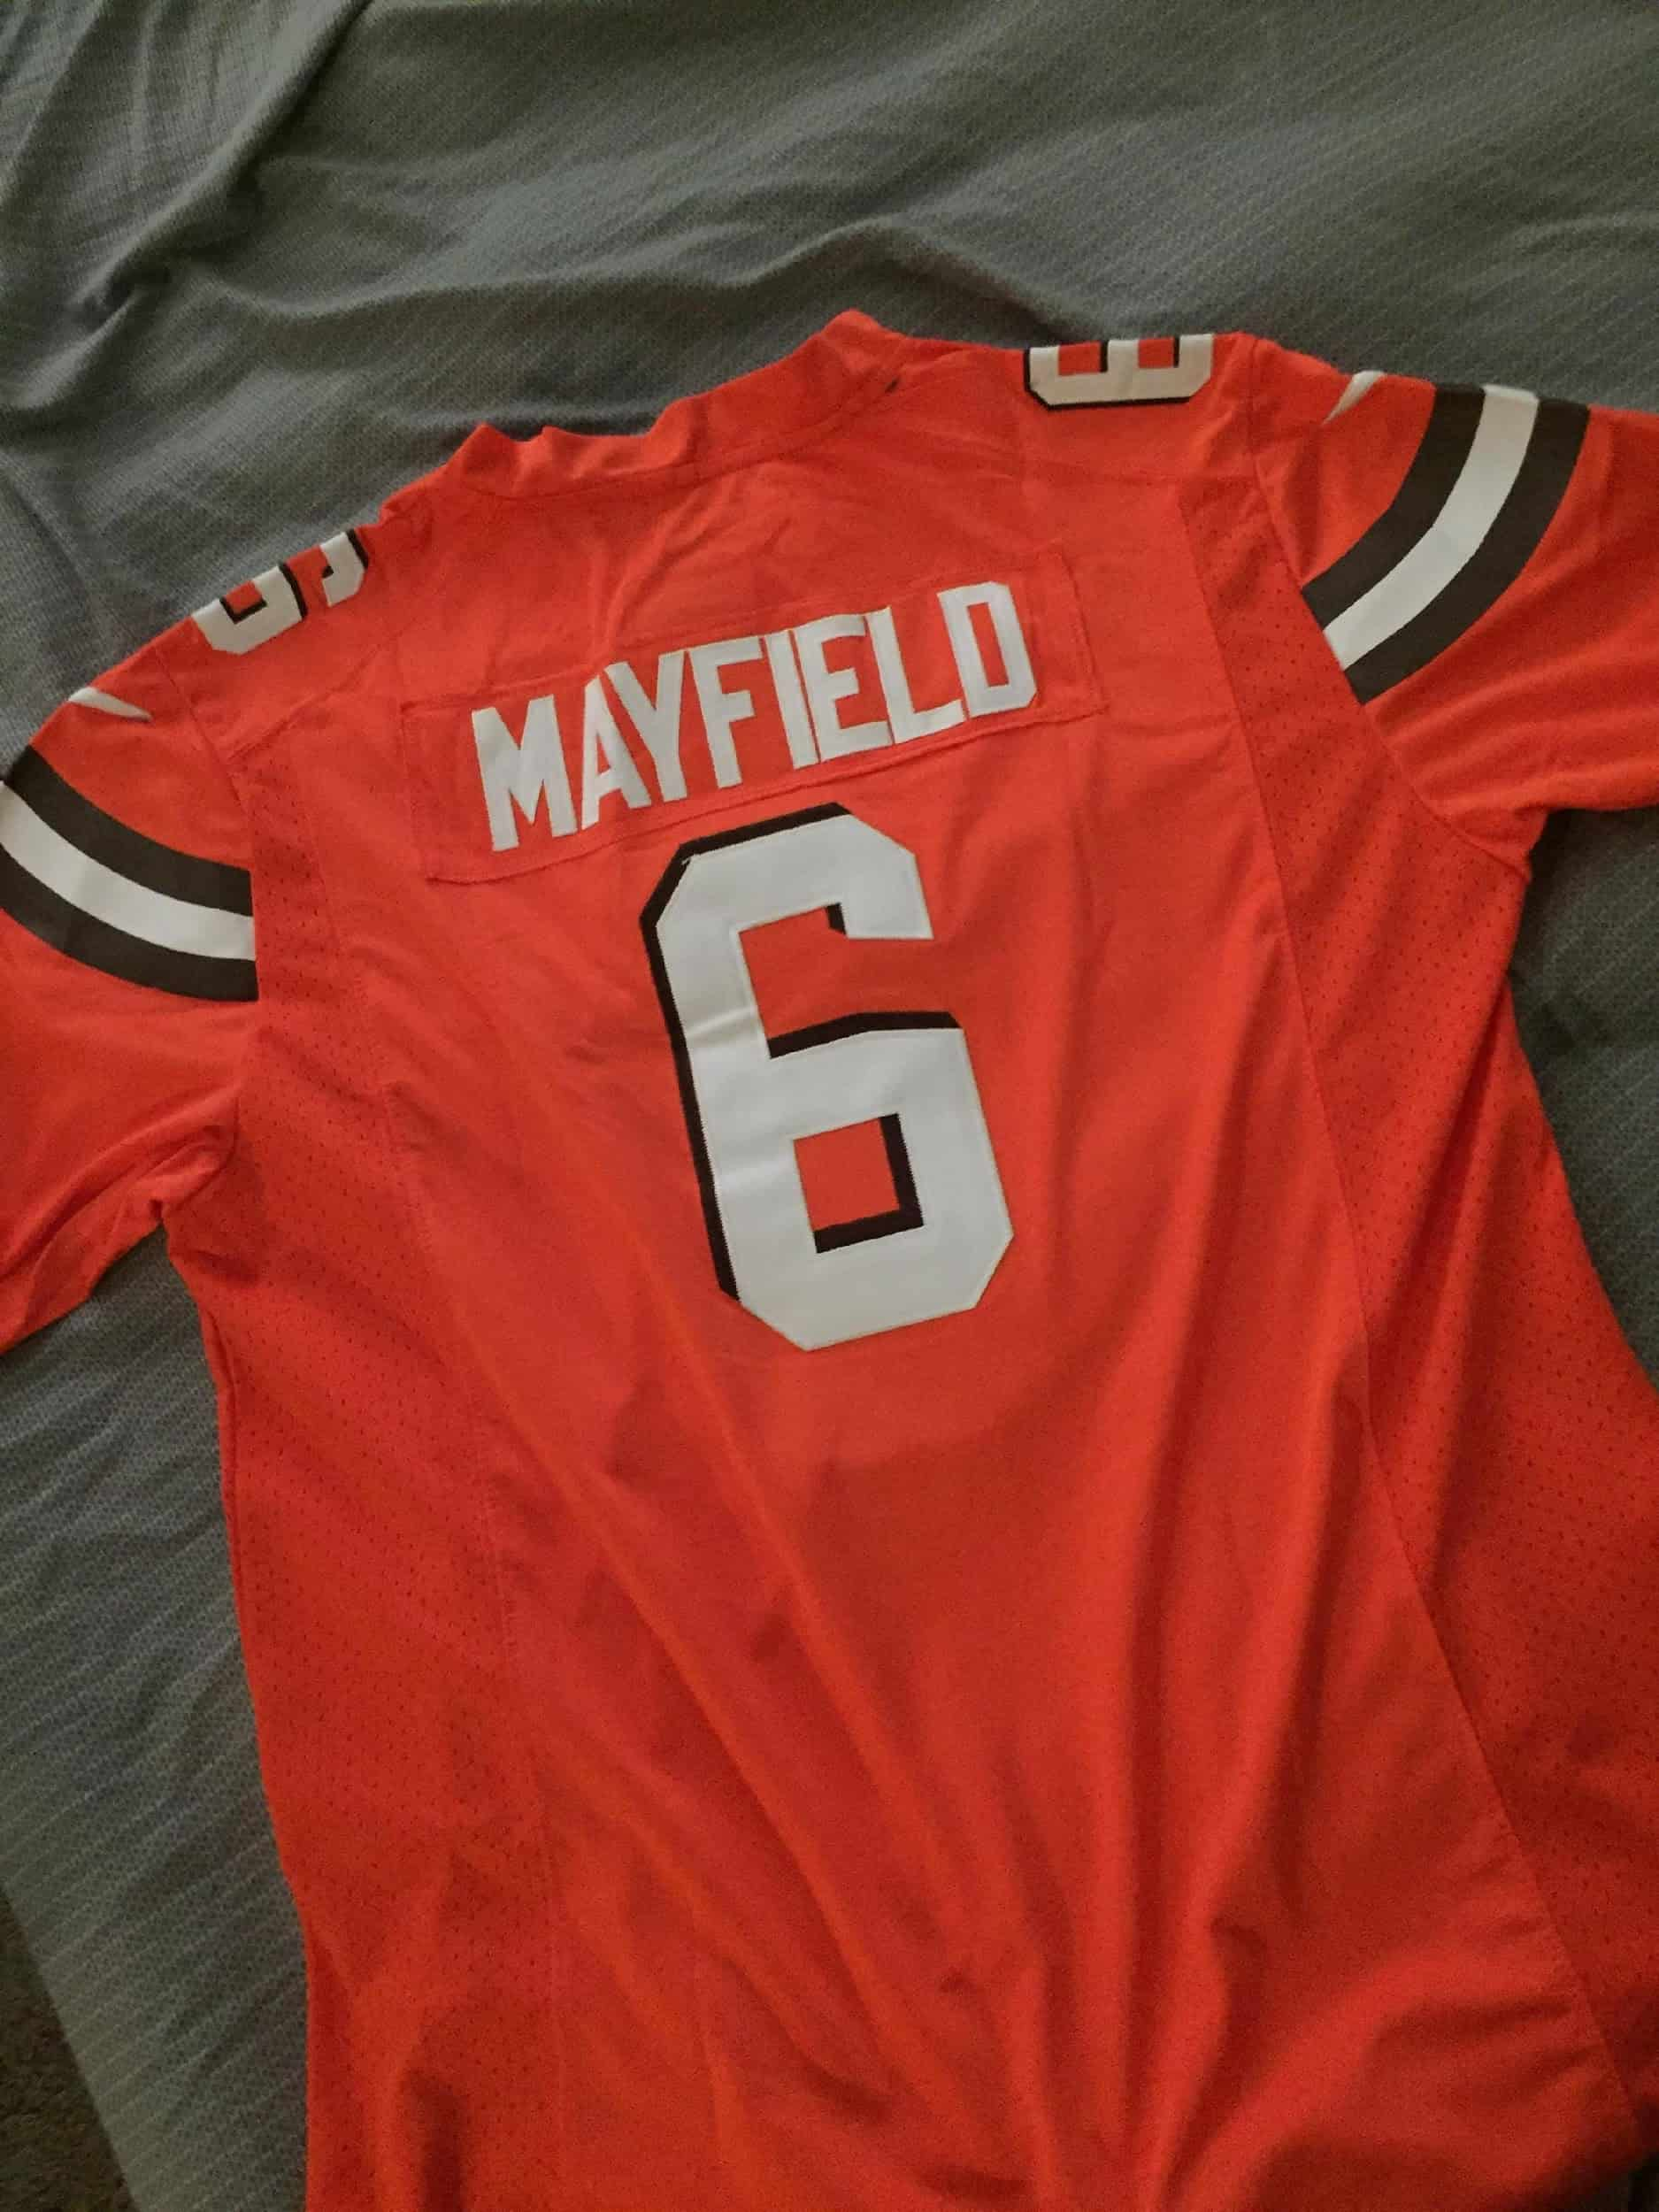 Orange #6 Baker Mayfield Jersey is best copy Nba Jerseys of 2020 - Best Reviews Guide. fans in usa and all around the world. orange black and white stripe.